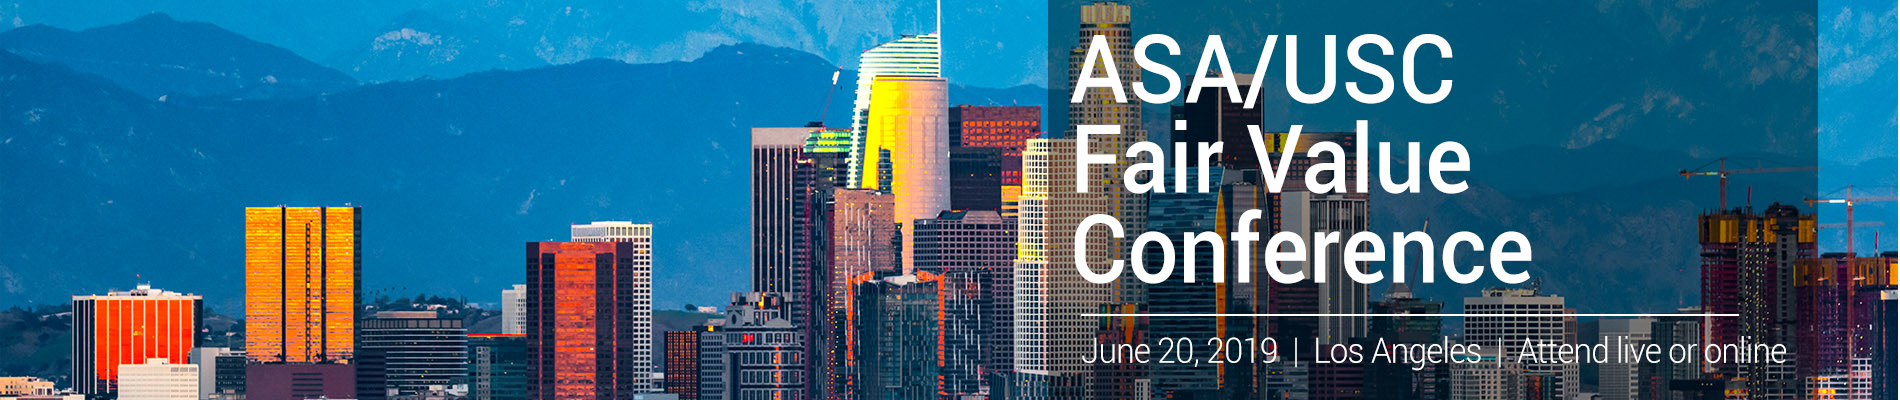 ASA/USC 14th Annual Fair Value Conference